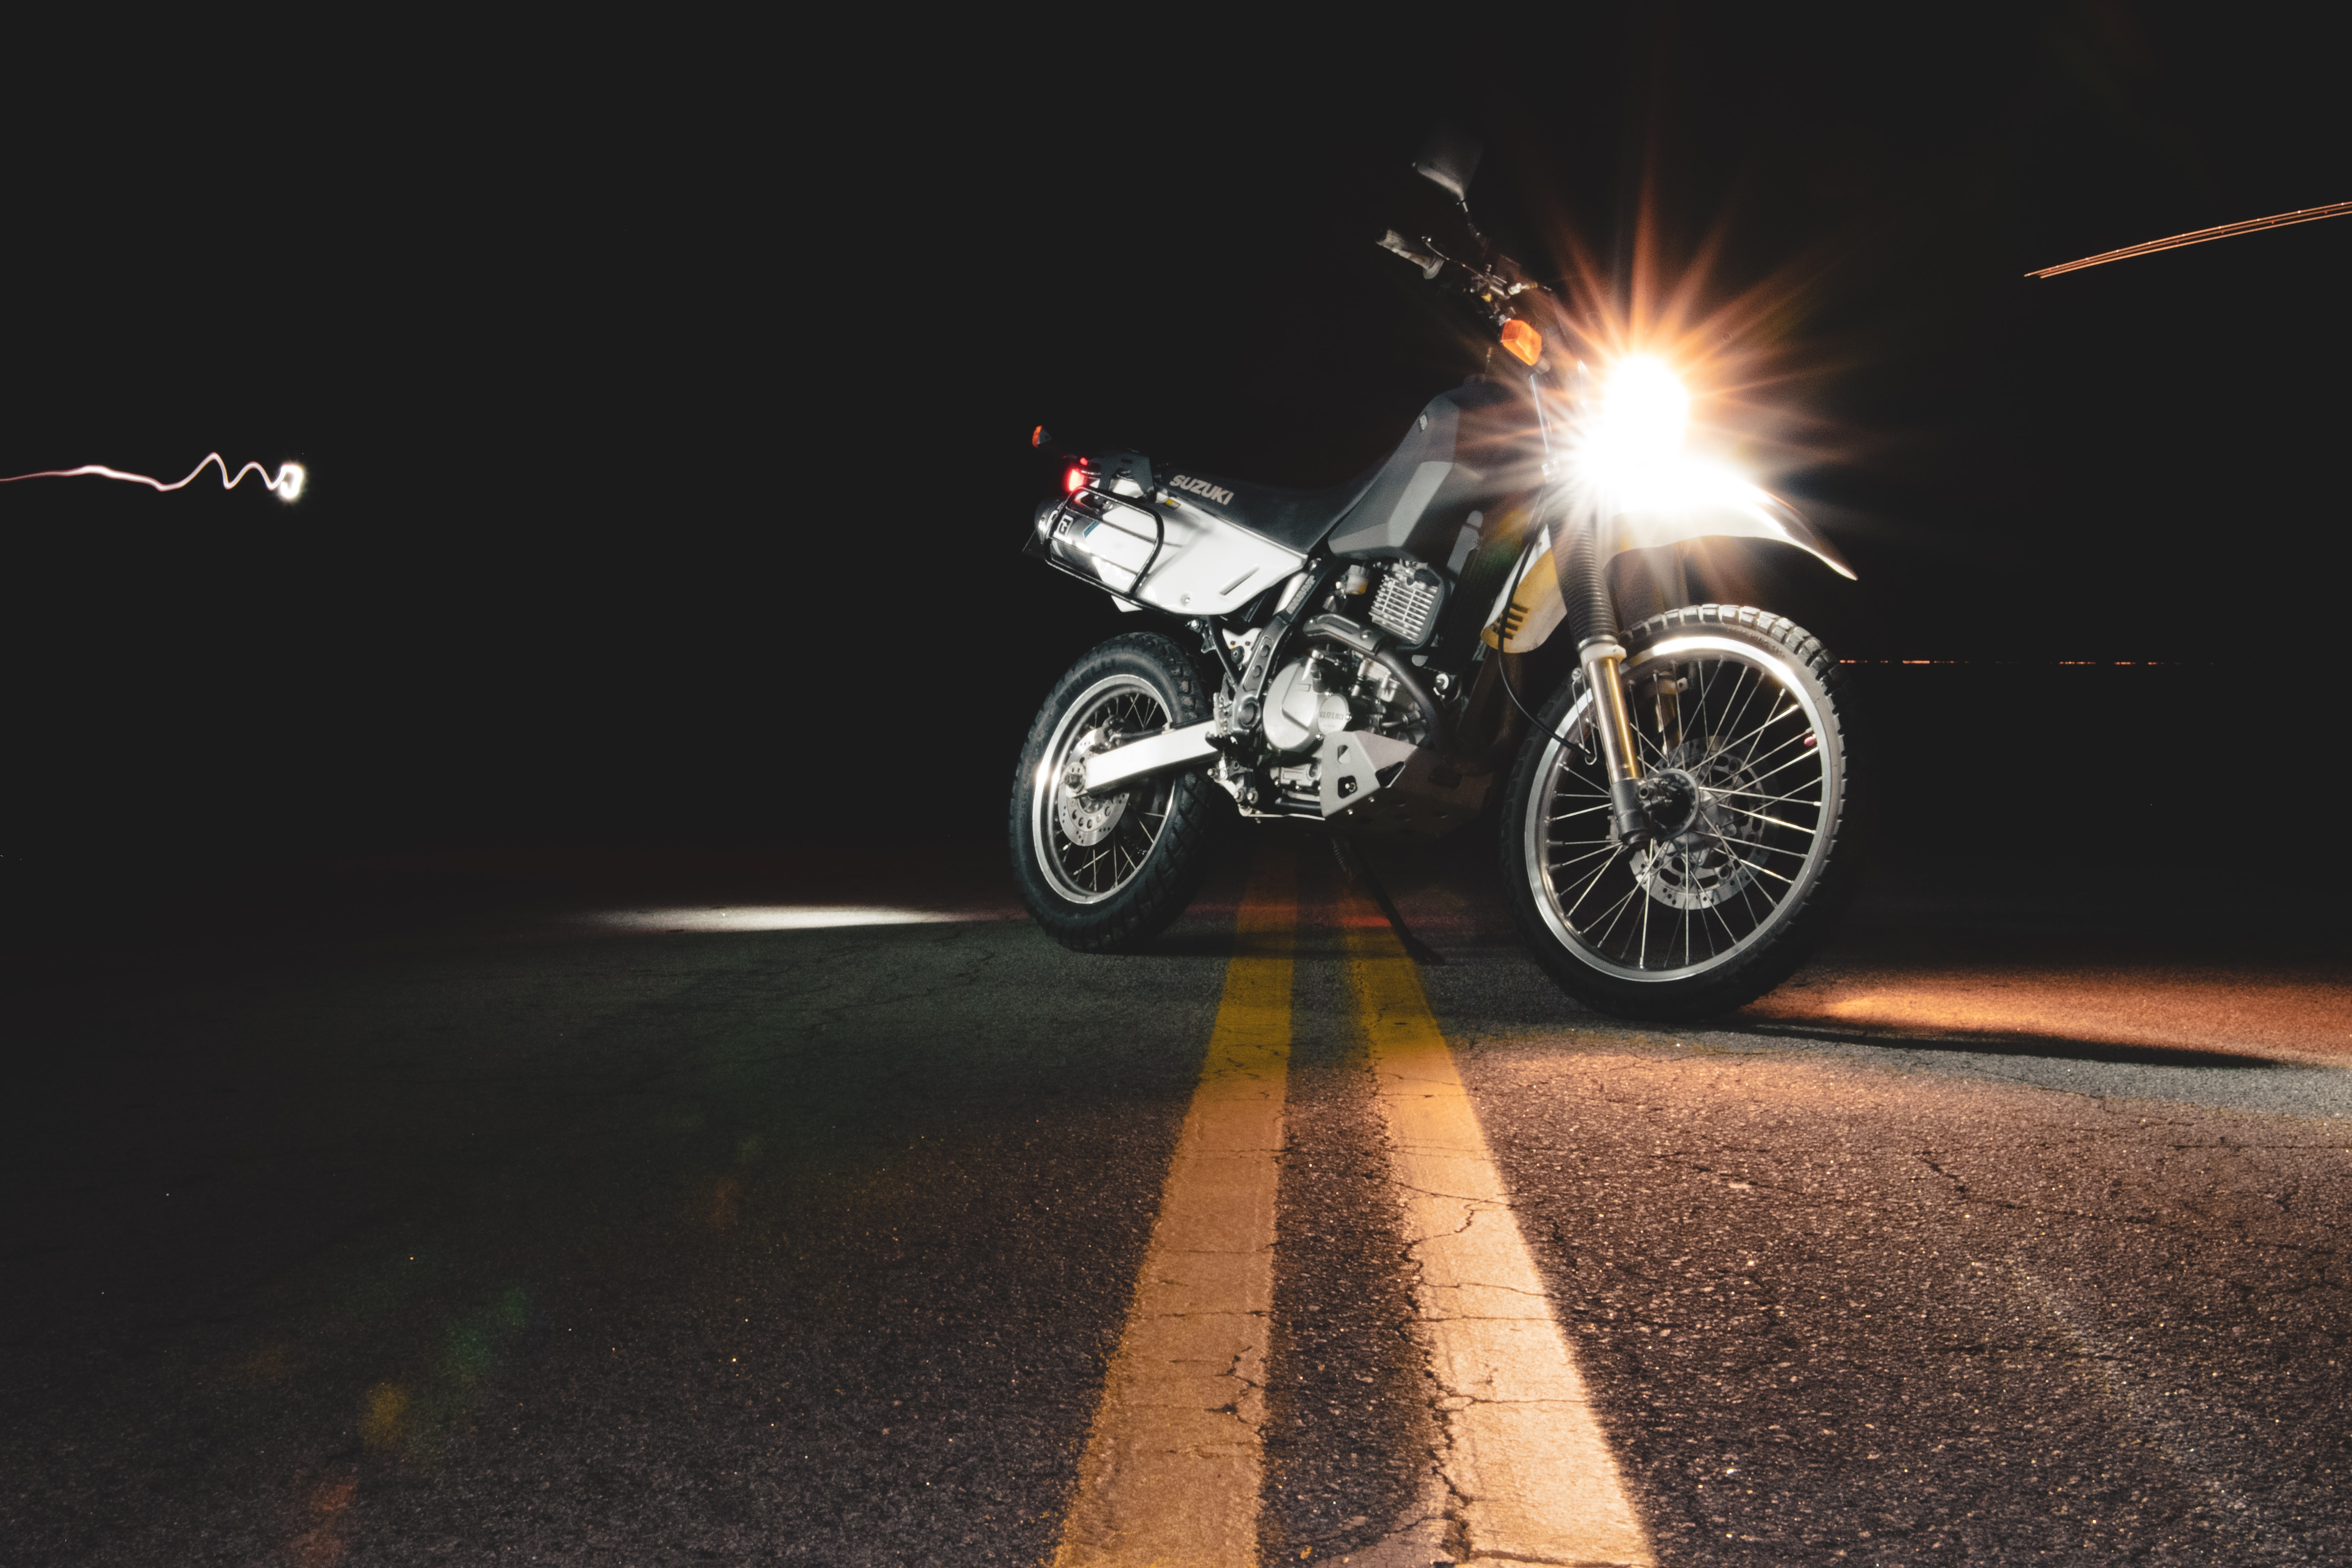 Which driving lights or utility lights are good for a motorcycle or ATV?